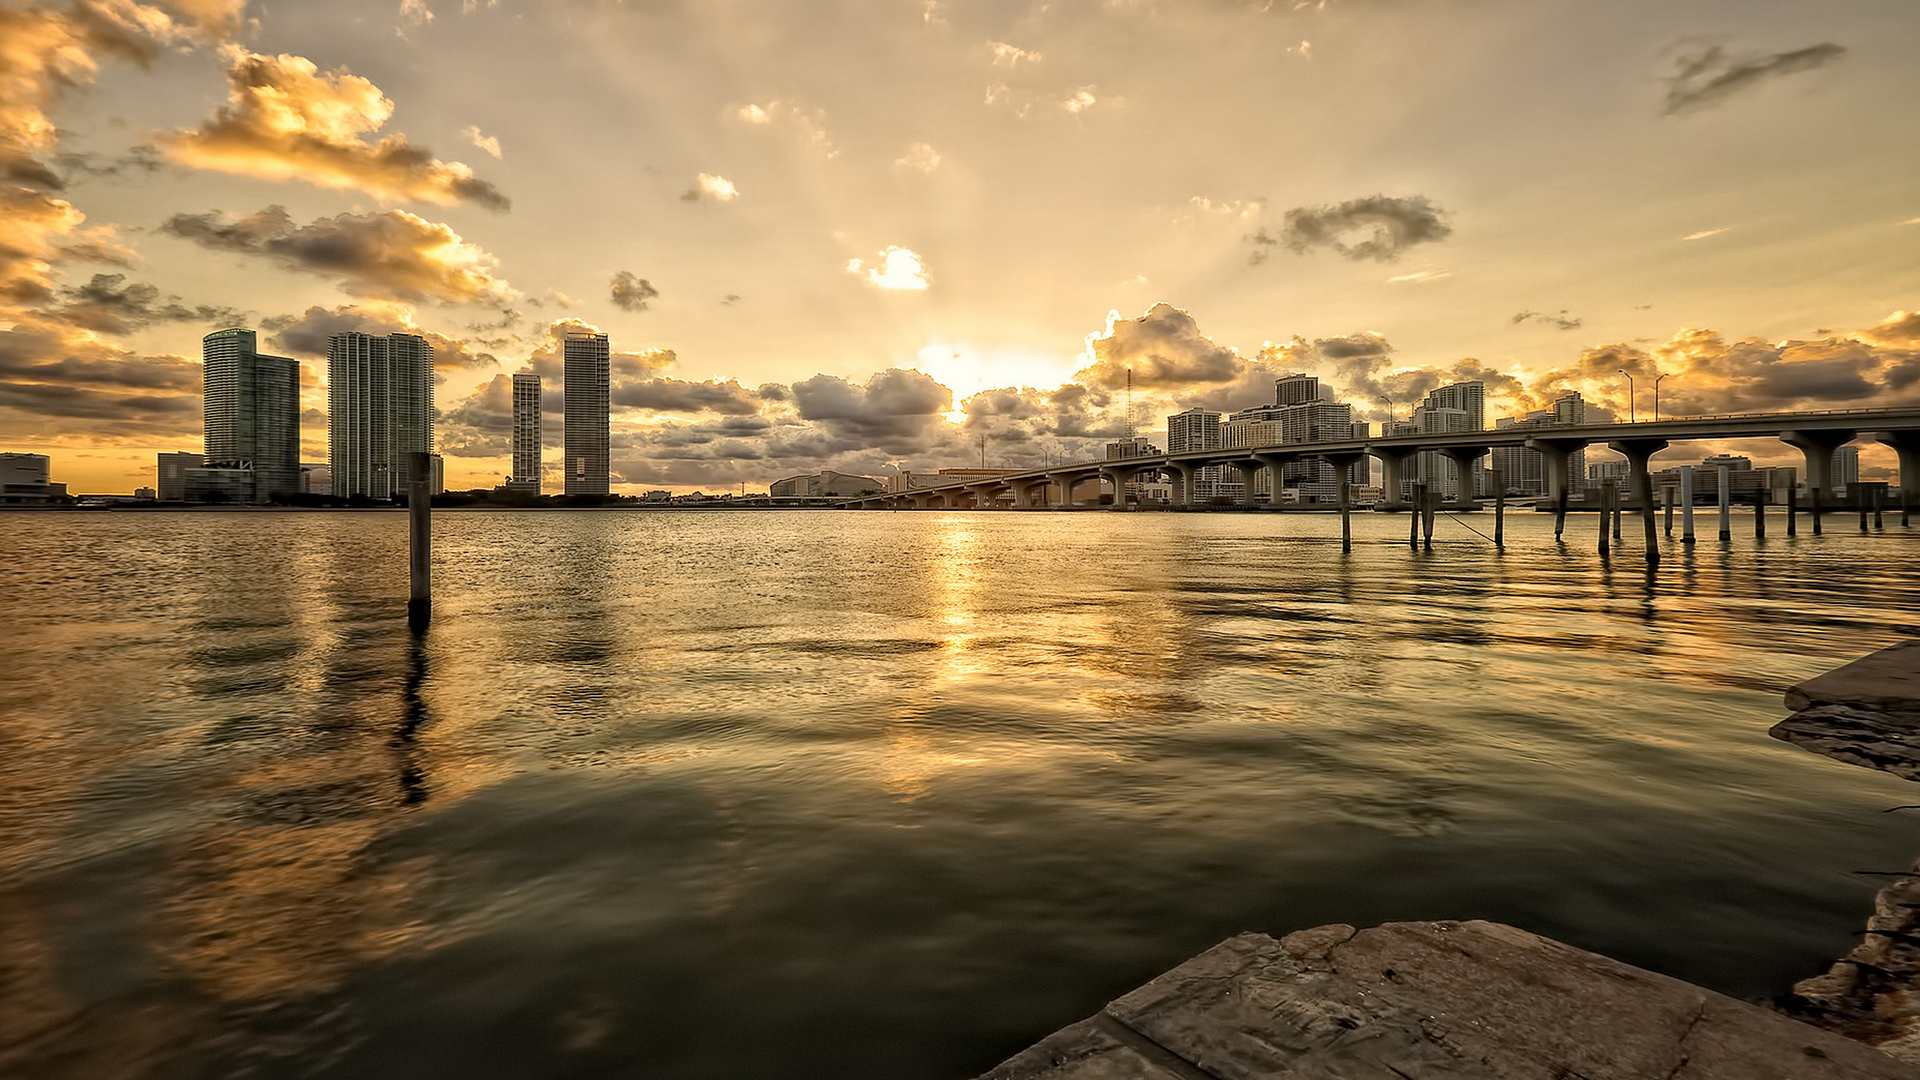 miami-abstract-wallpaper-1920x1080-1077.jpg